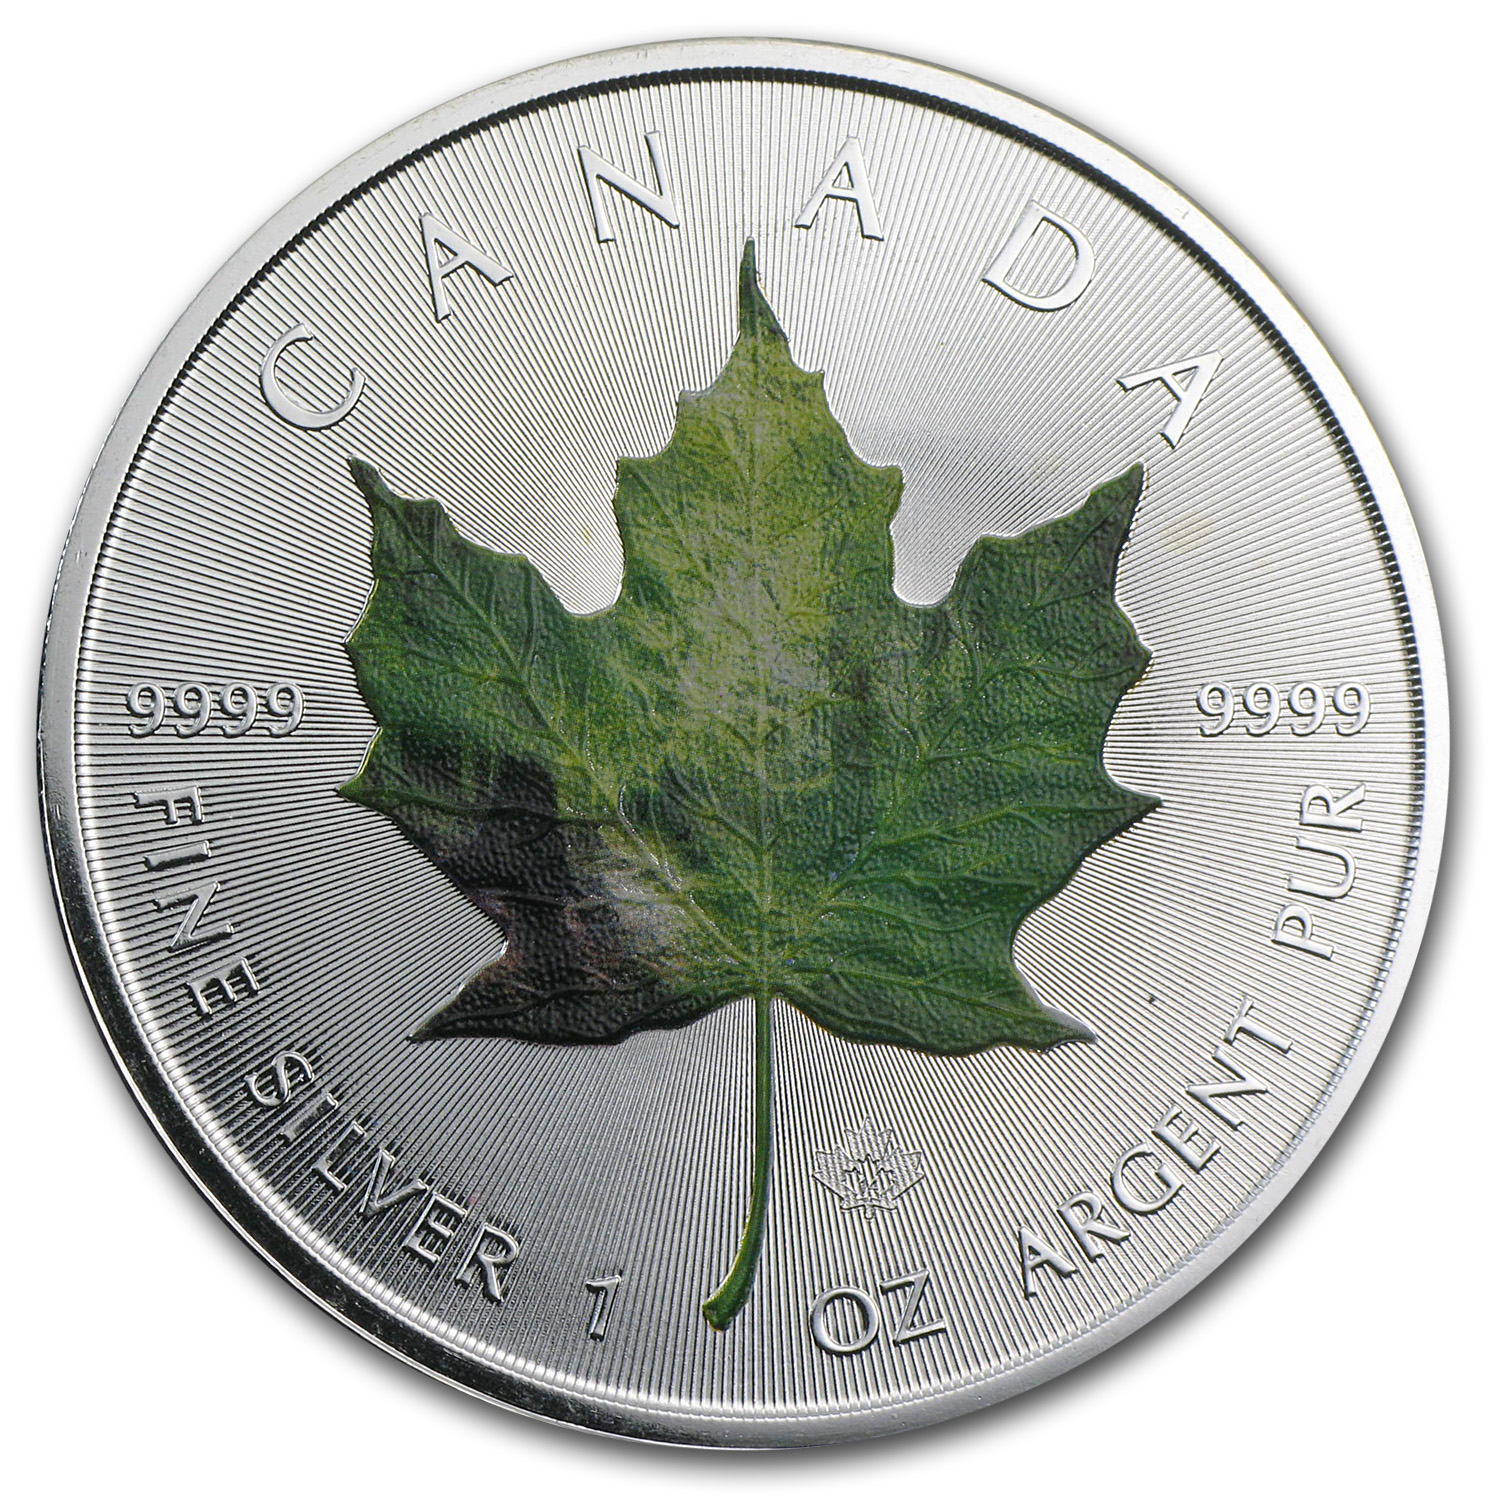 2014 1 oz Silver Canadian Maple Leaf - Spring Landscape